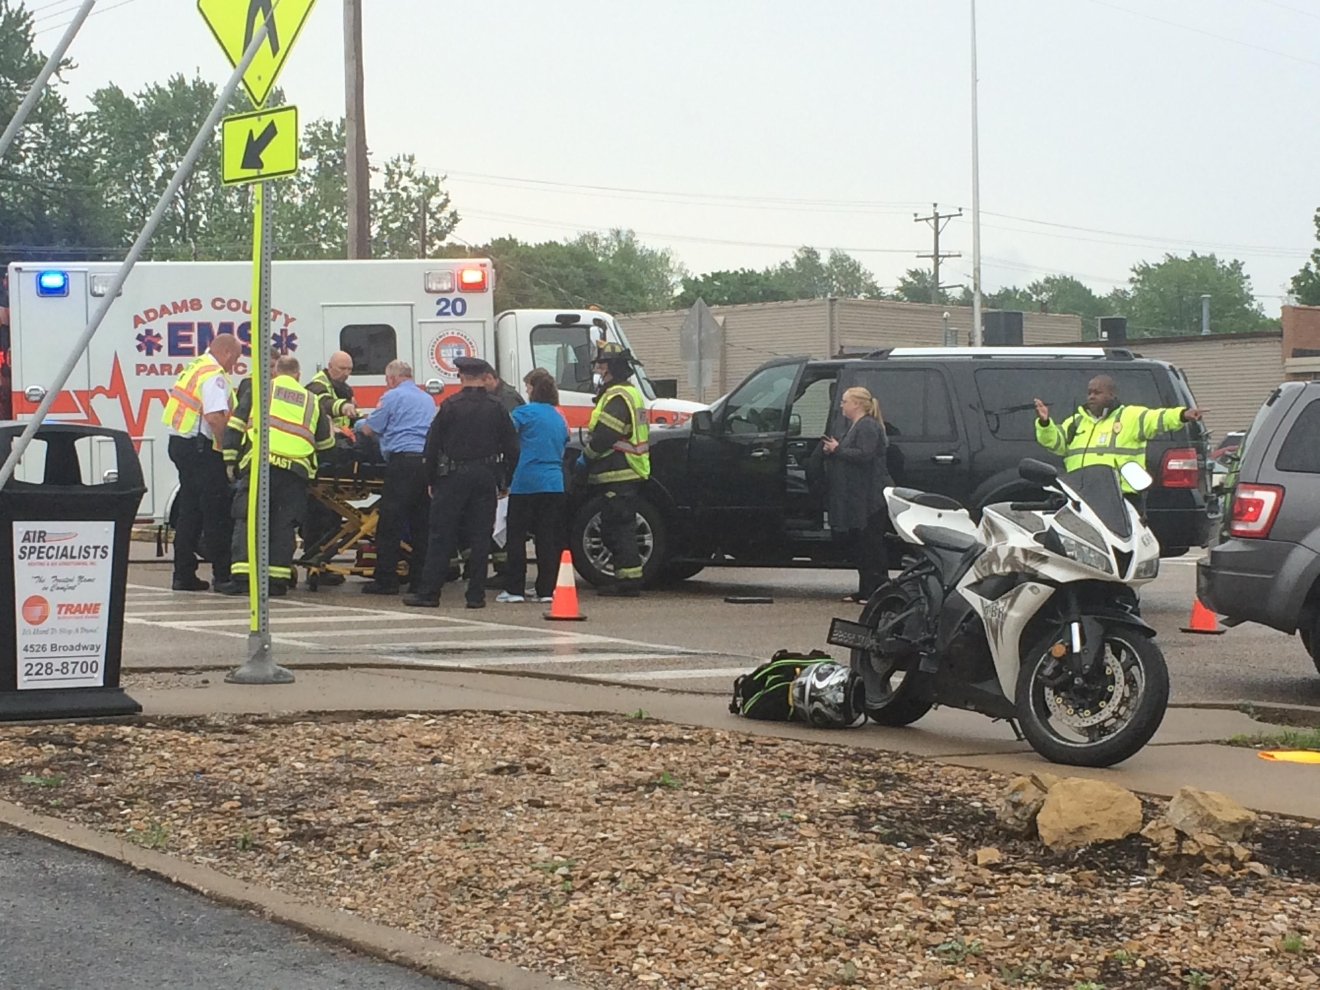 Motorcycle and vehicle collide in Quincy